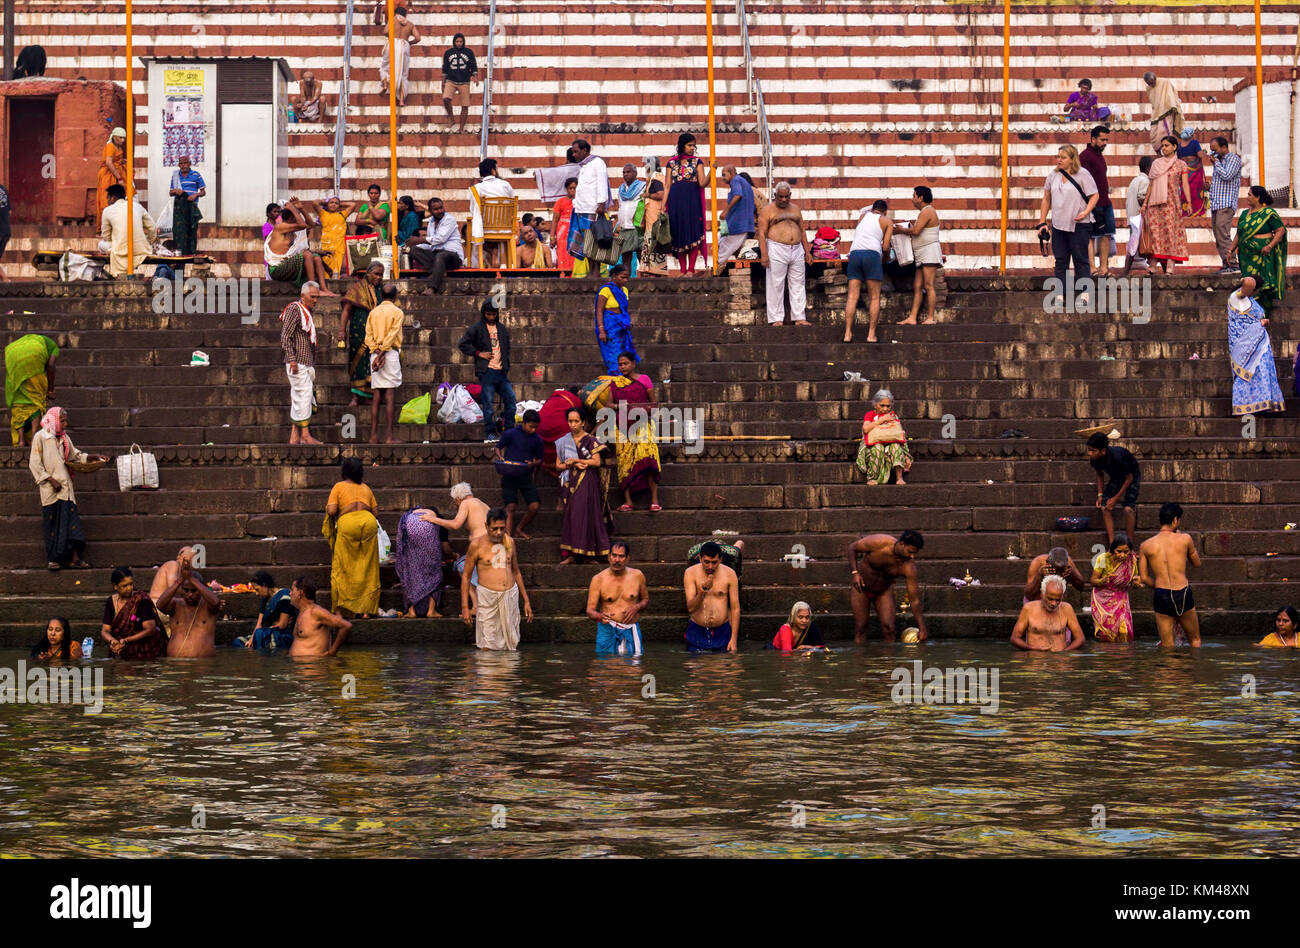 bathers-in-the-holy-river-ganges-religio